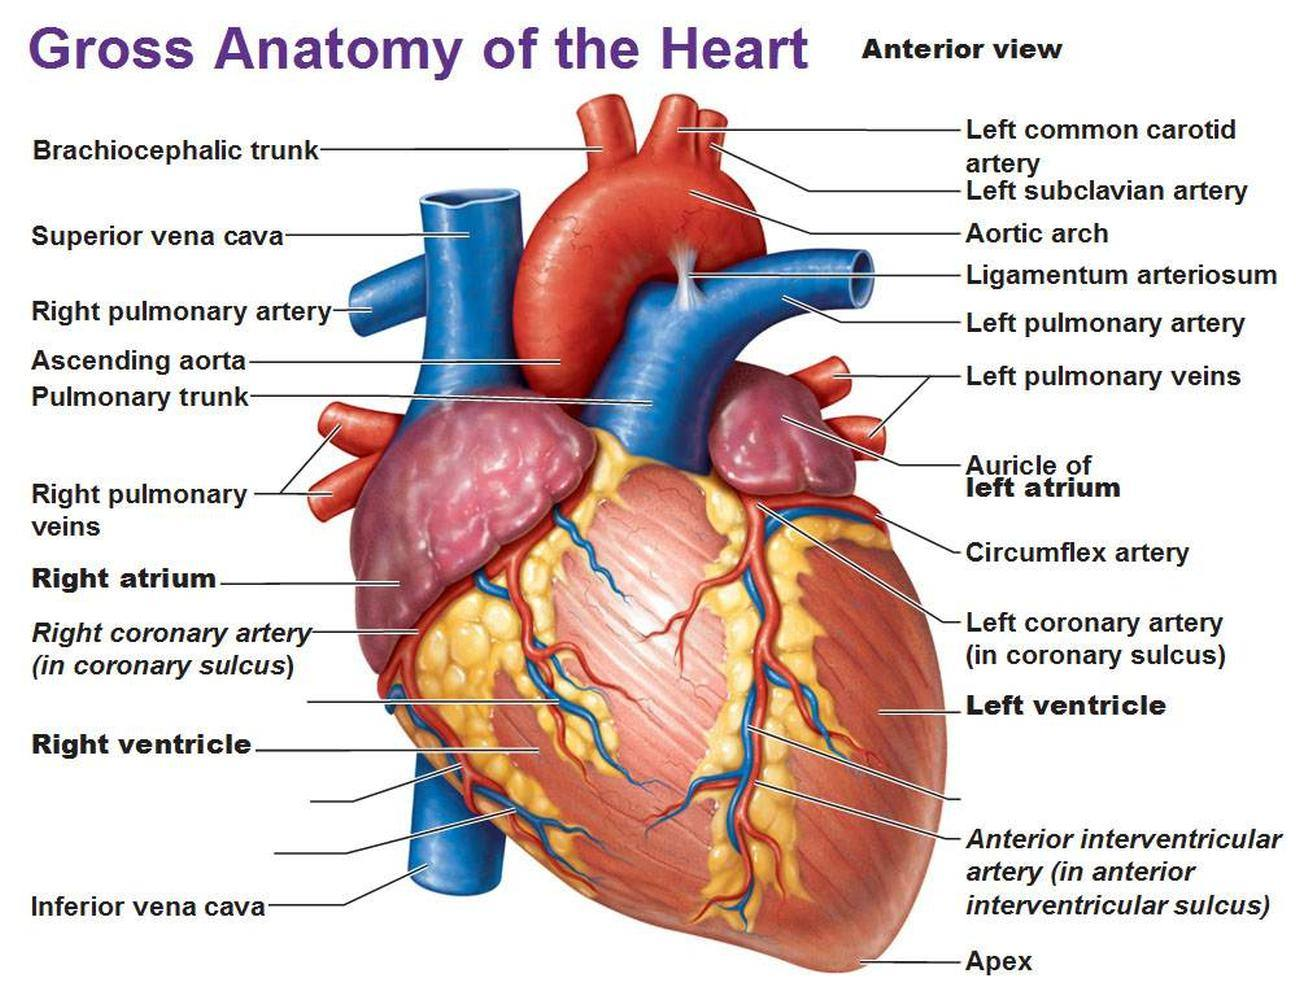 Pictures Of Anterior Interventricular Artery